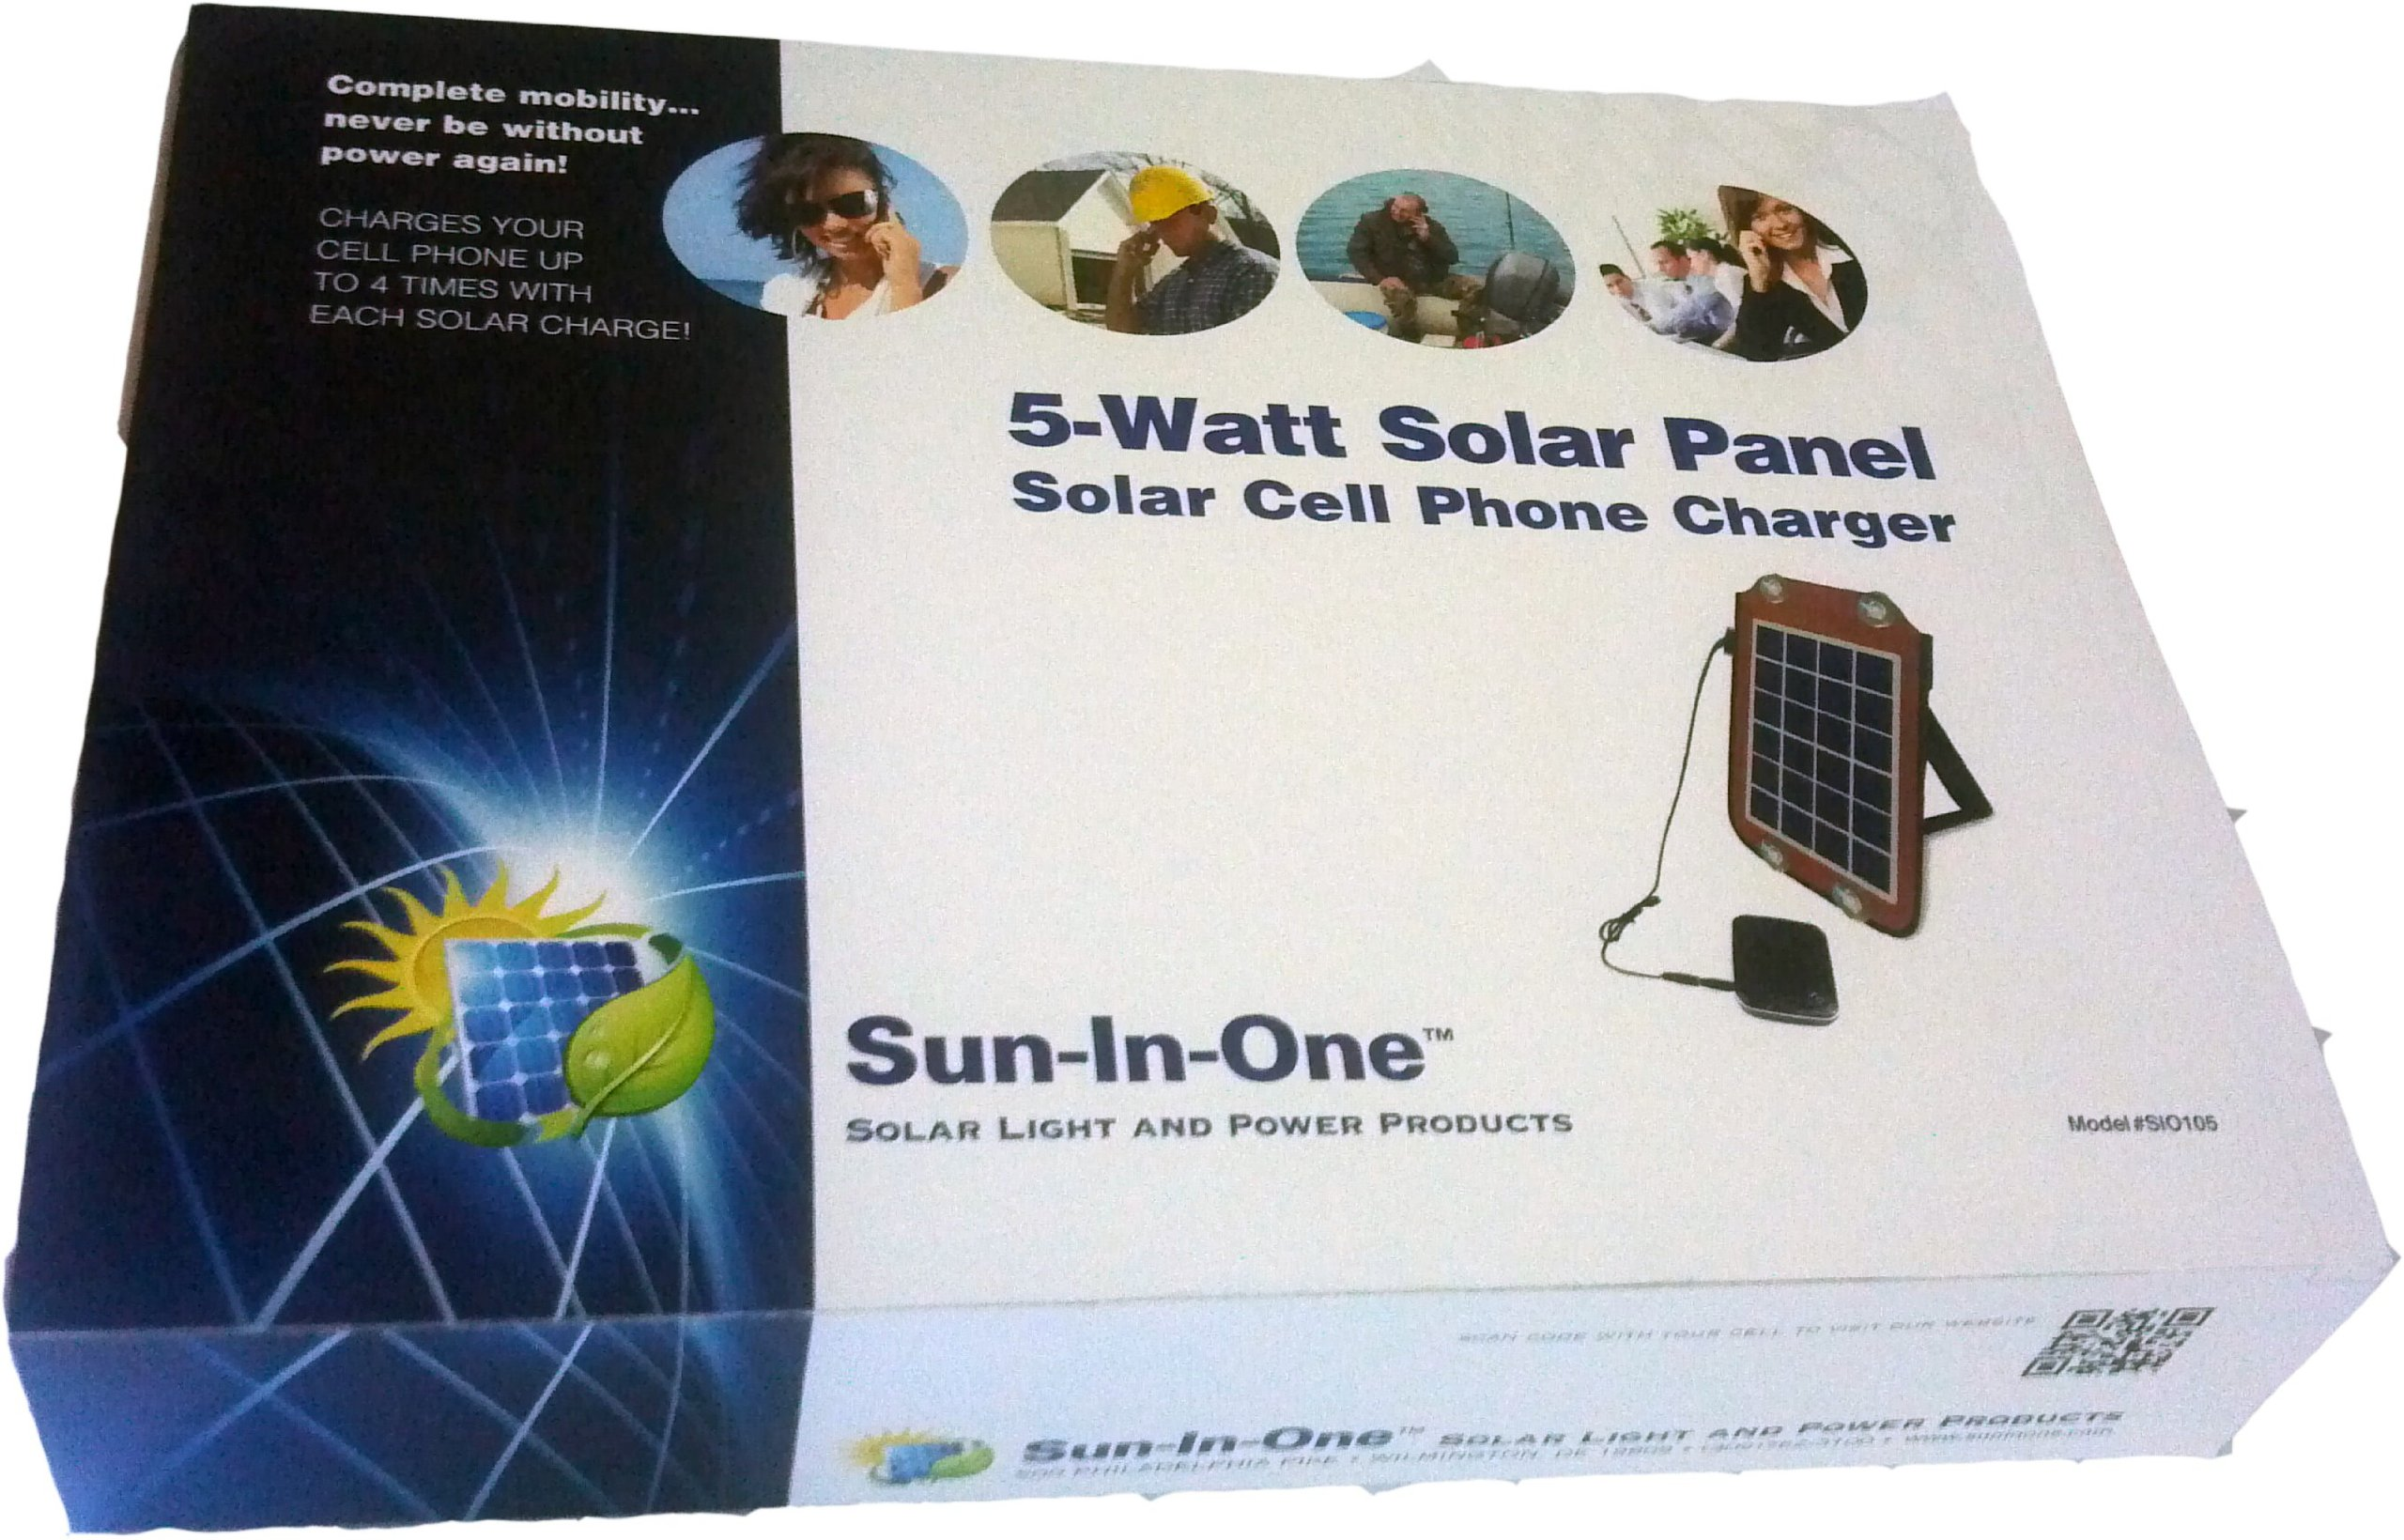 5 Watt Solar Cell Phone Charger. Includes: 5200mAh rechargeable battery, Fabric case with pouches, Suction cups for windshield mounting, Velcro straps for backpack mounting, Stand, AC adapter & variety of charging outputs. Charges Most Cell Phones with US by Sun-In-OneTM